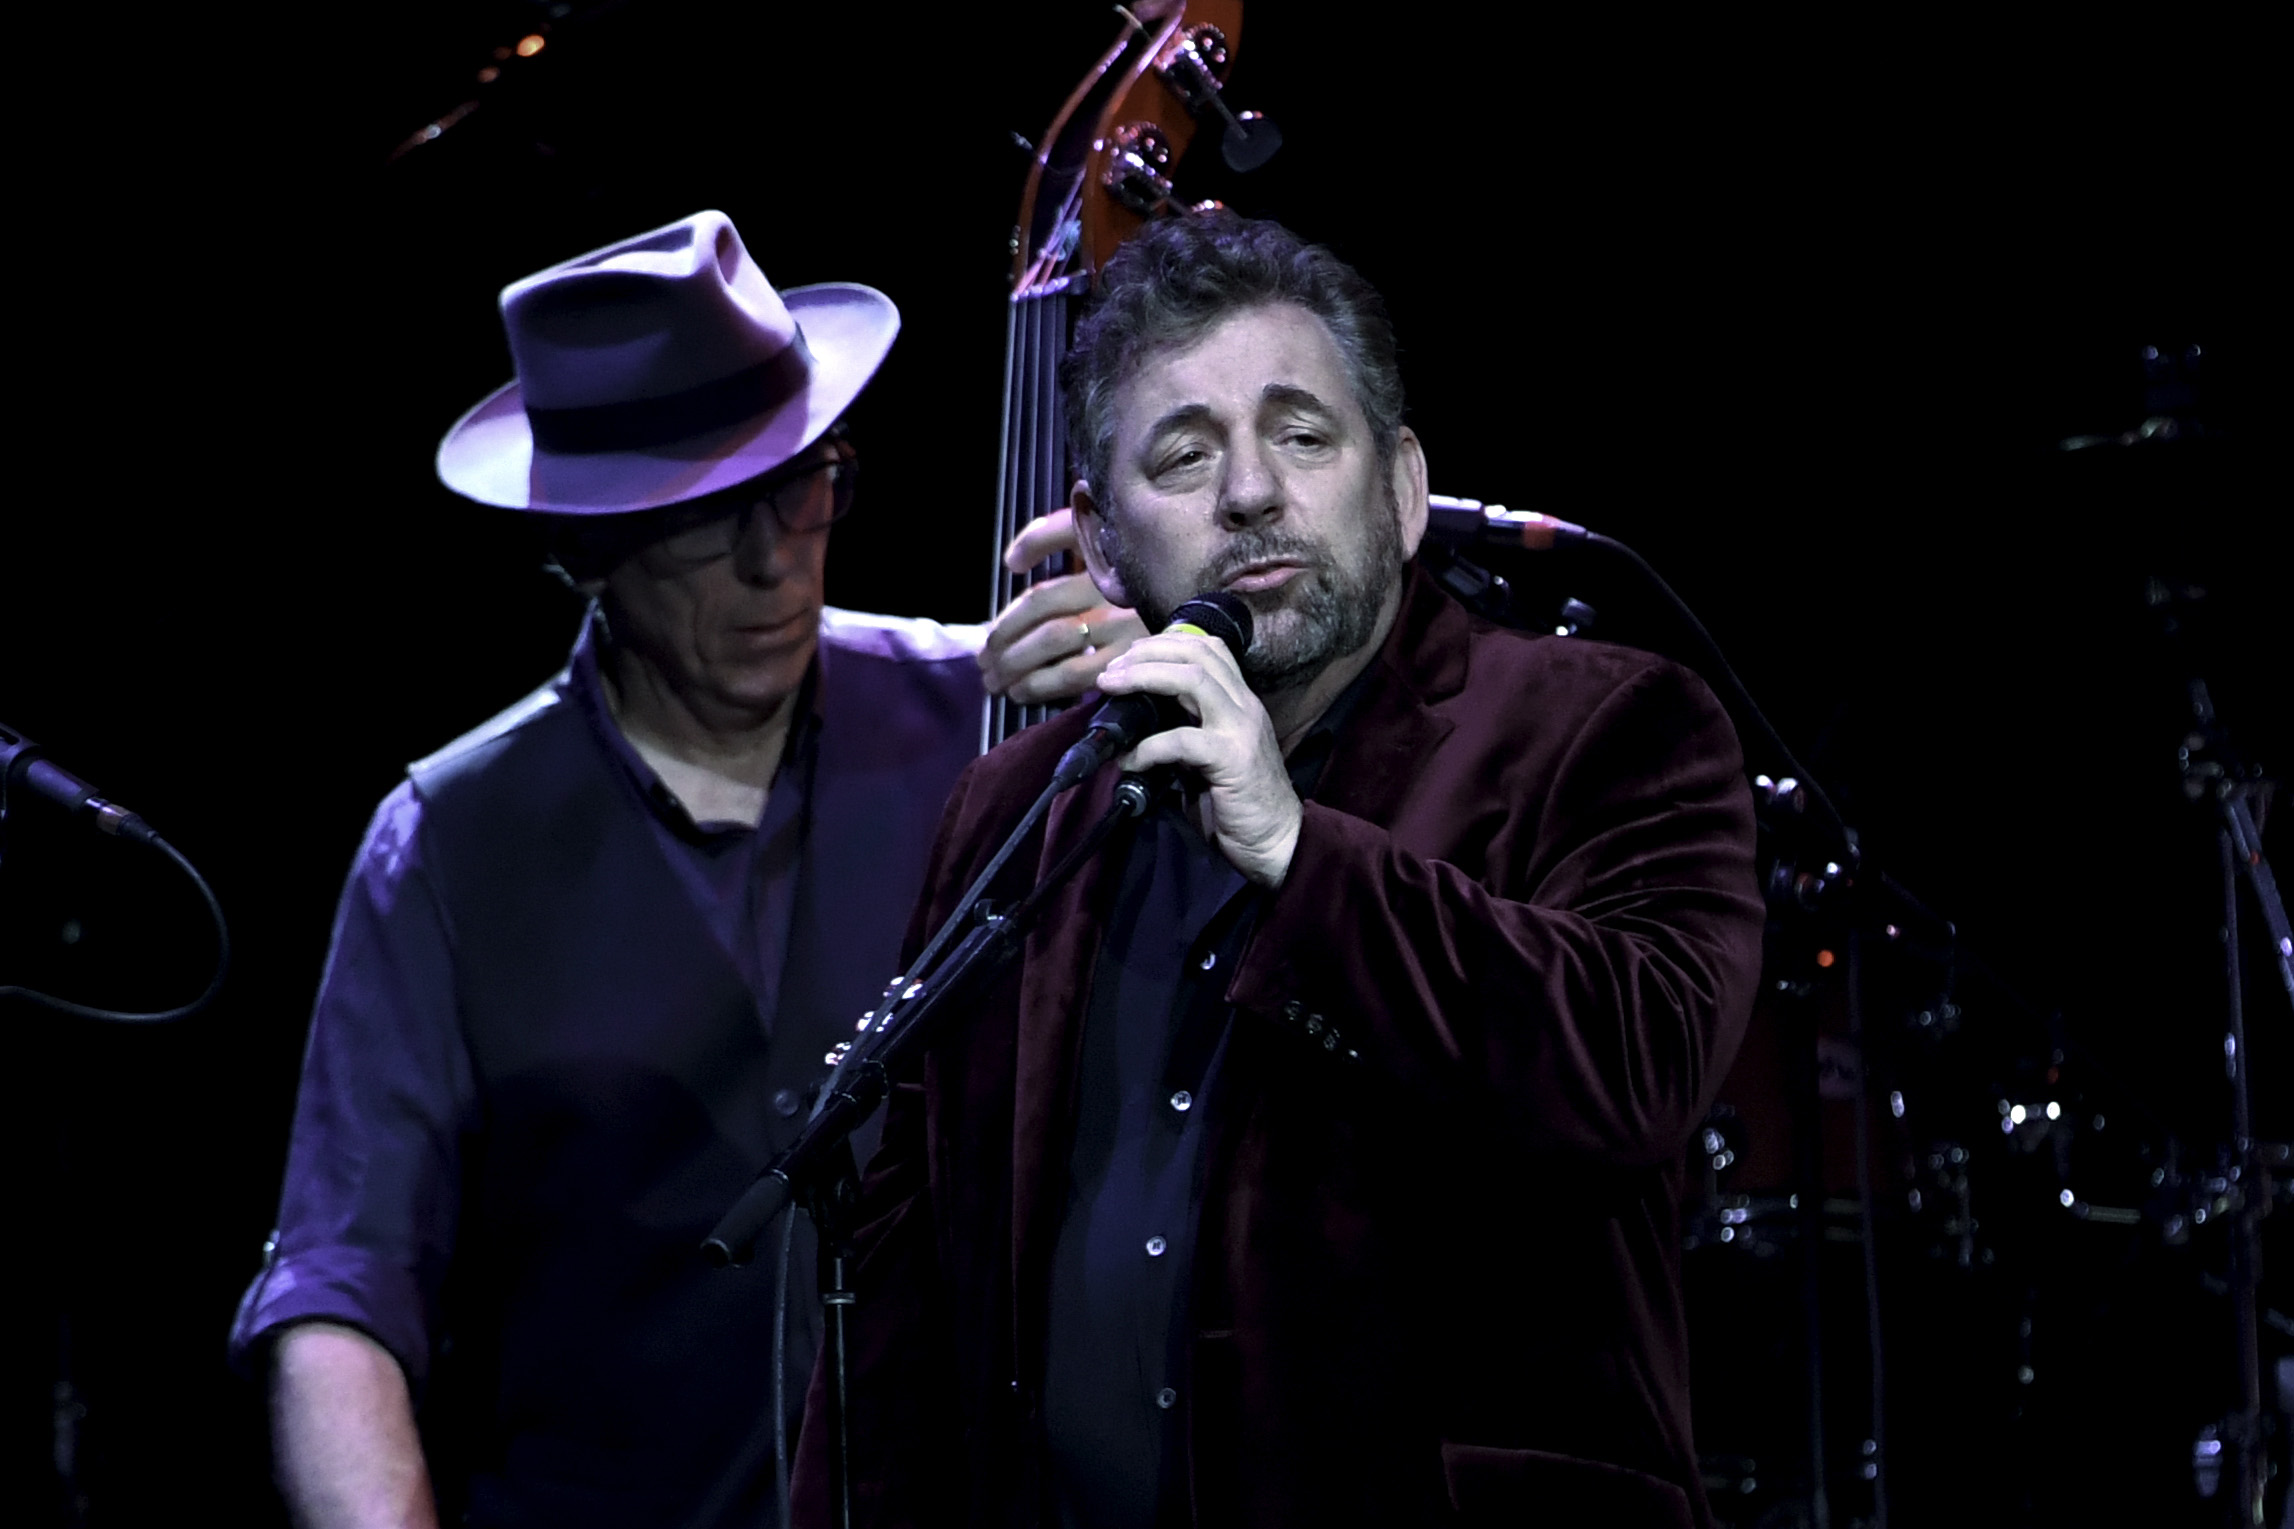 9838334-entertainment-james-dolan-jd-and-the-straight-shot